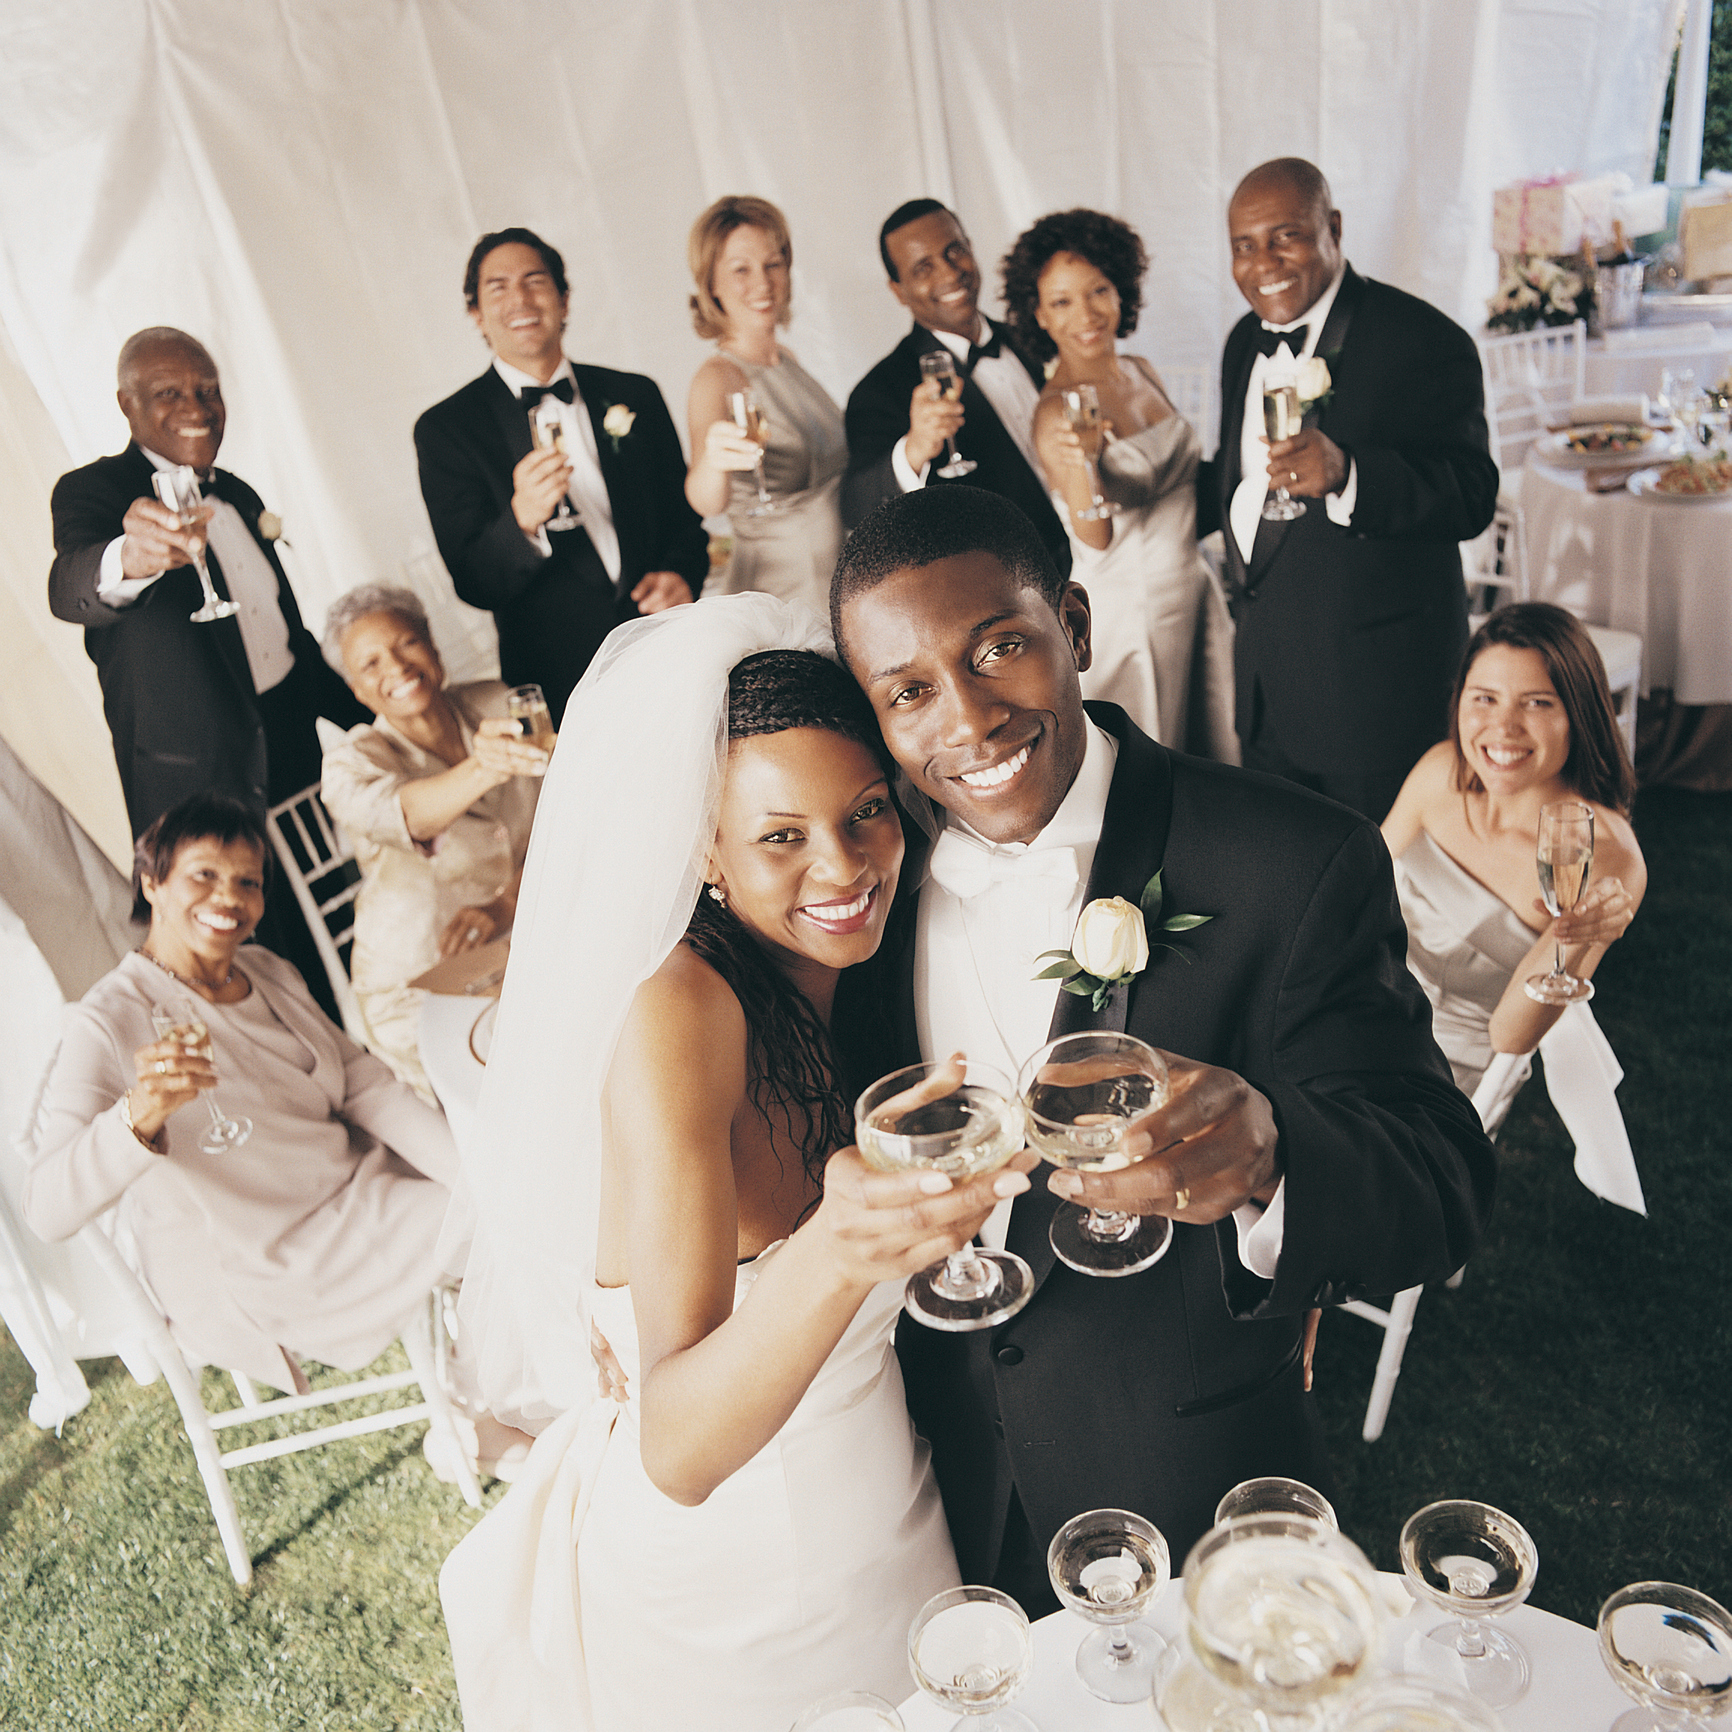 Wedding Family Photography List: 8 Tips For Cutting Down Your Wedding Guest List